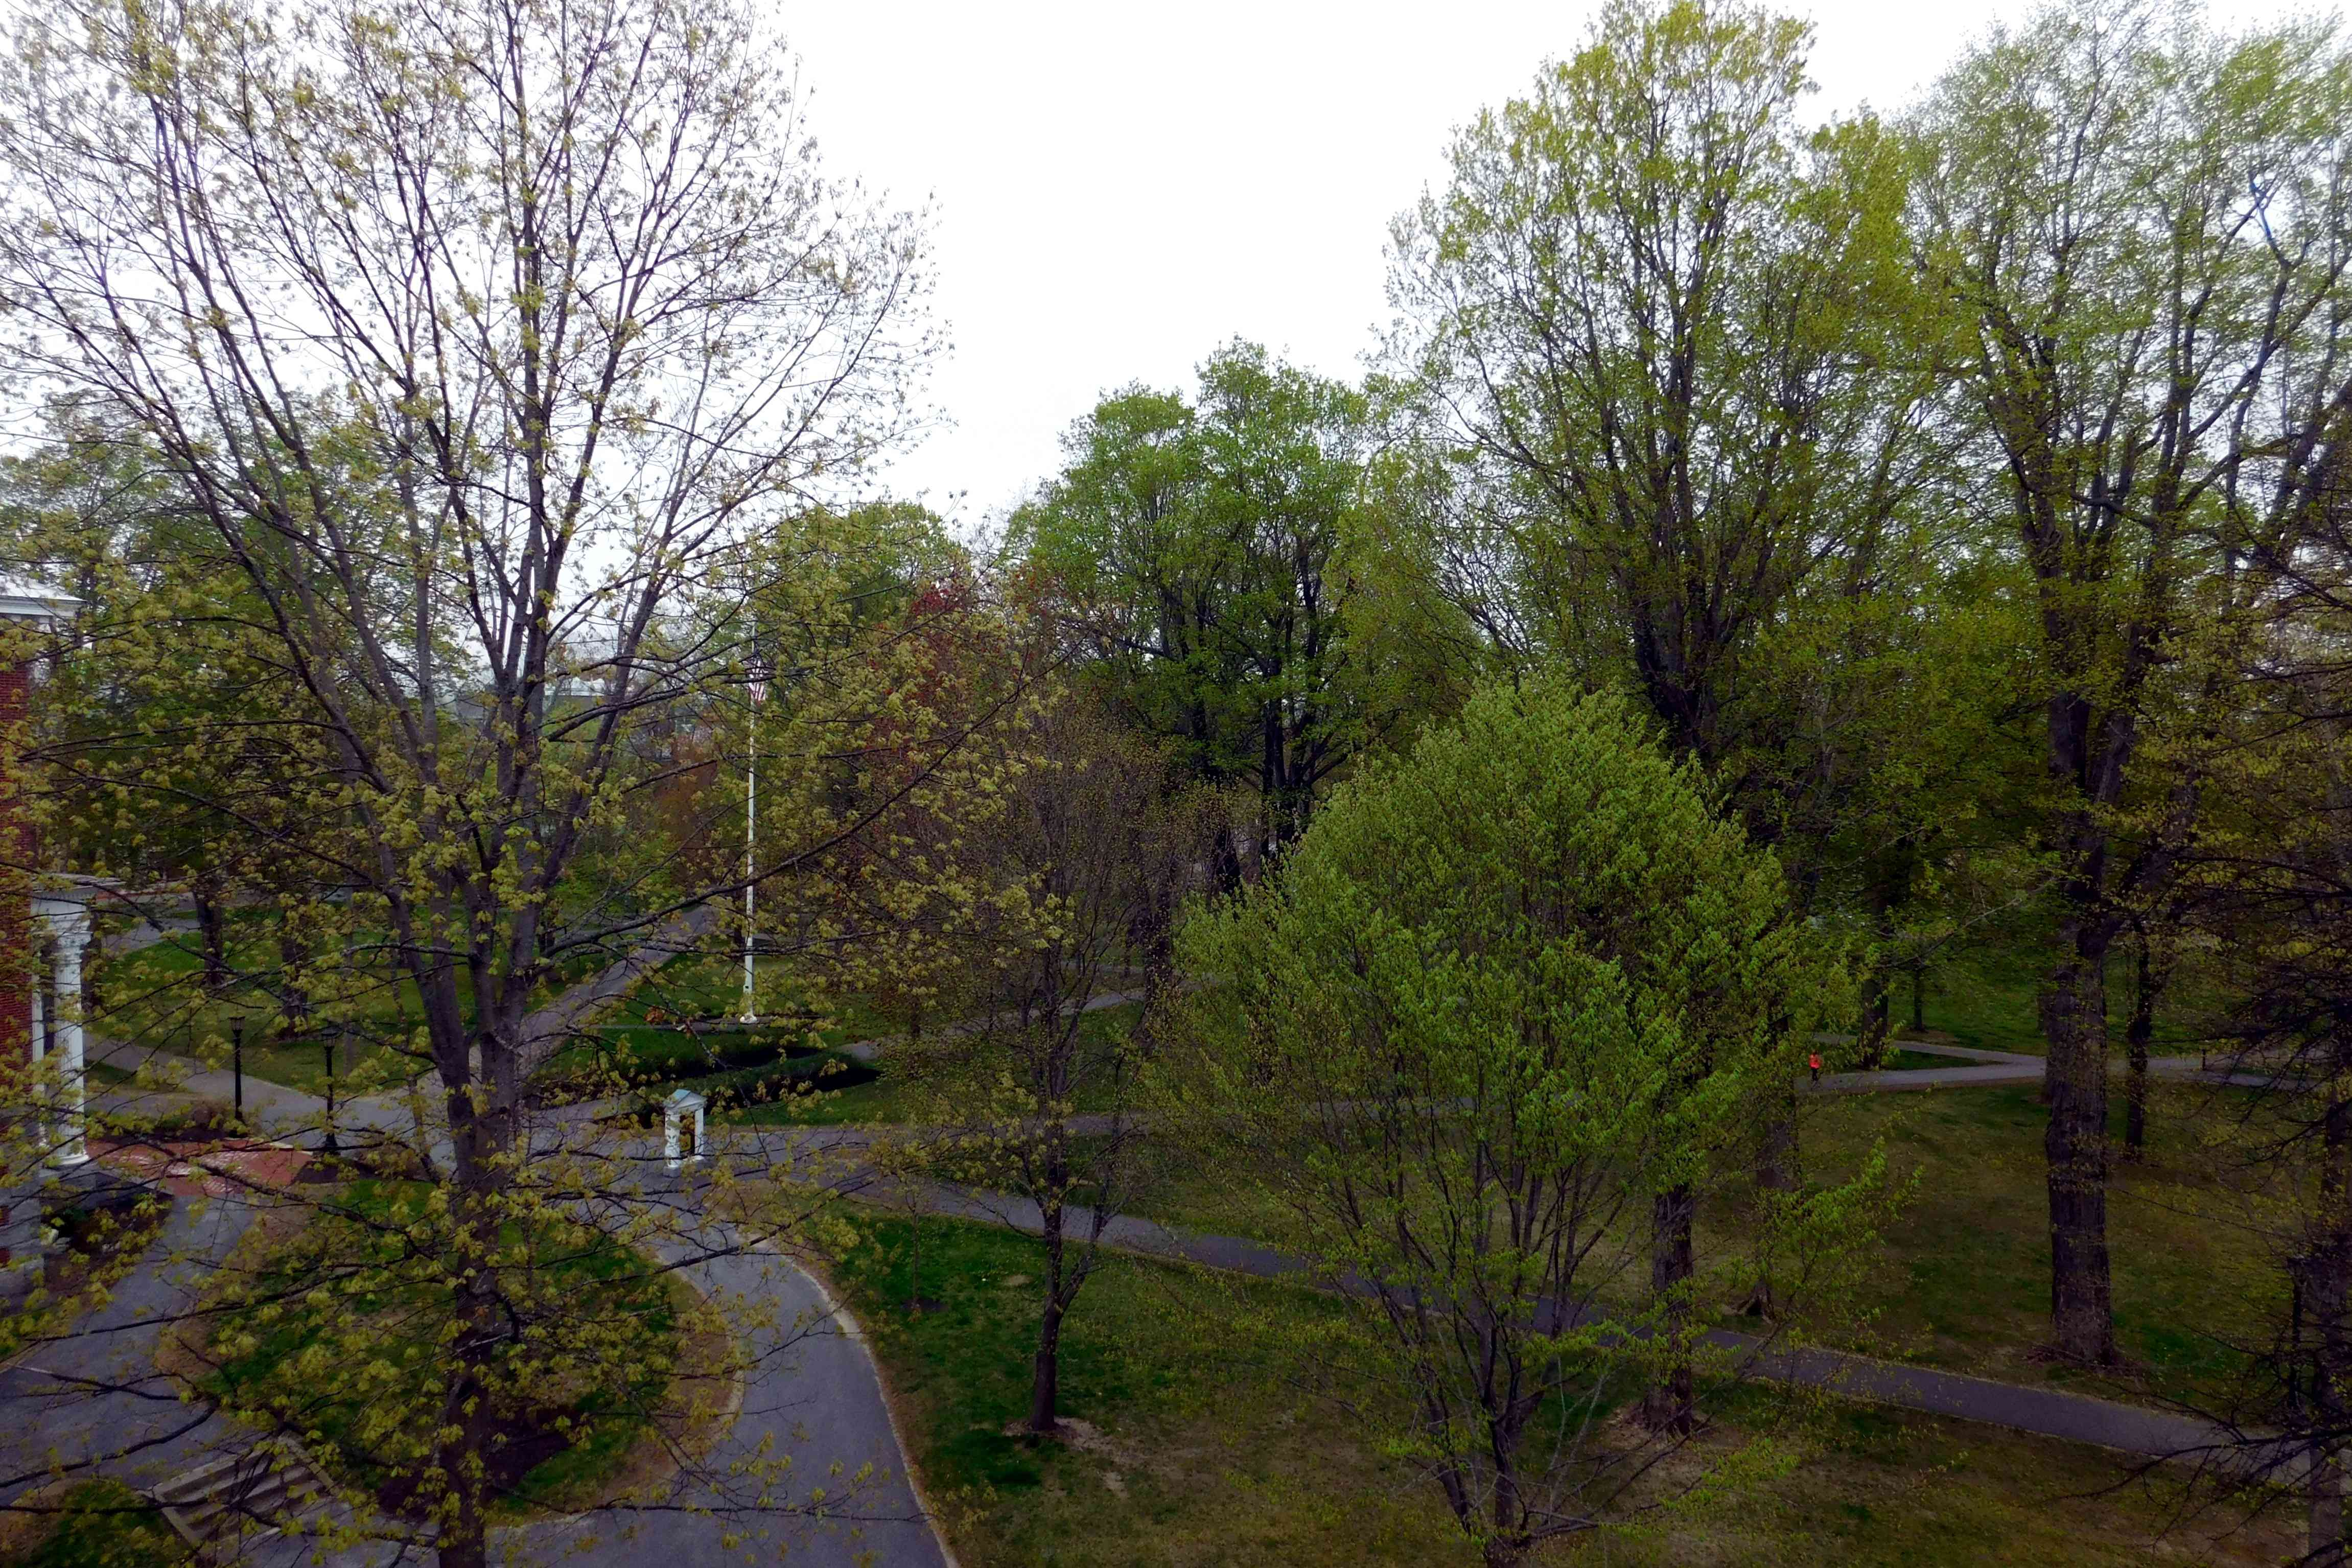 Green Scenery at Bates College